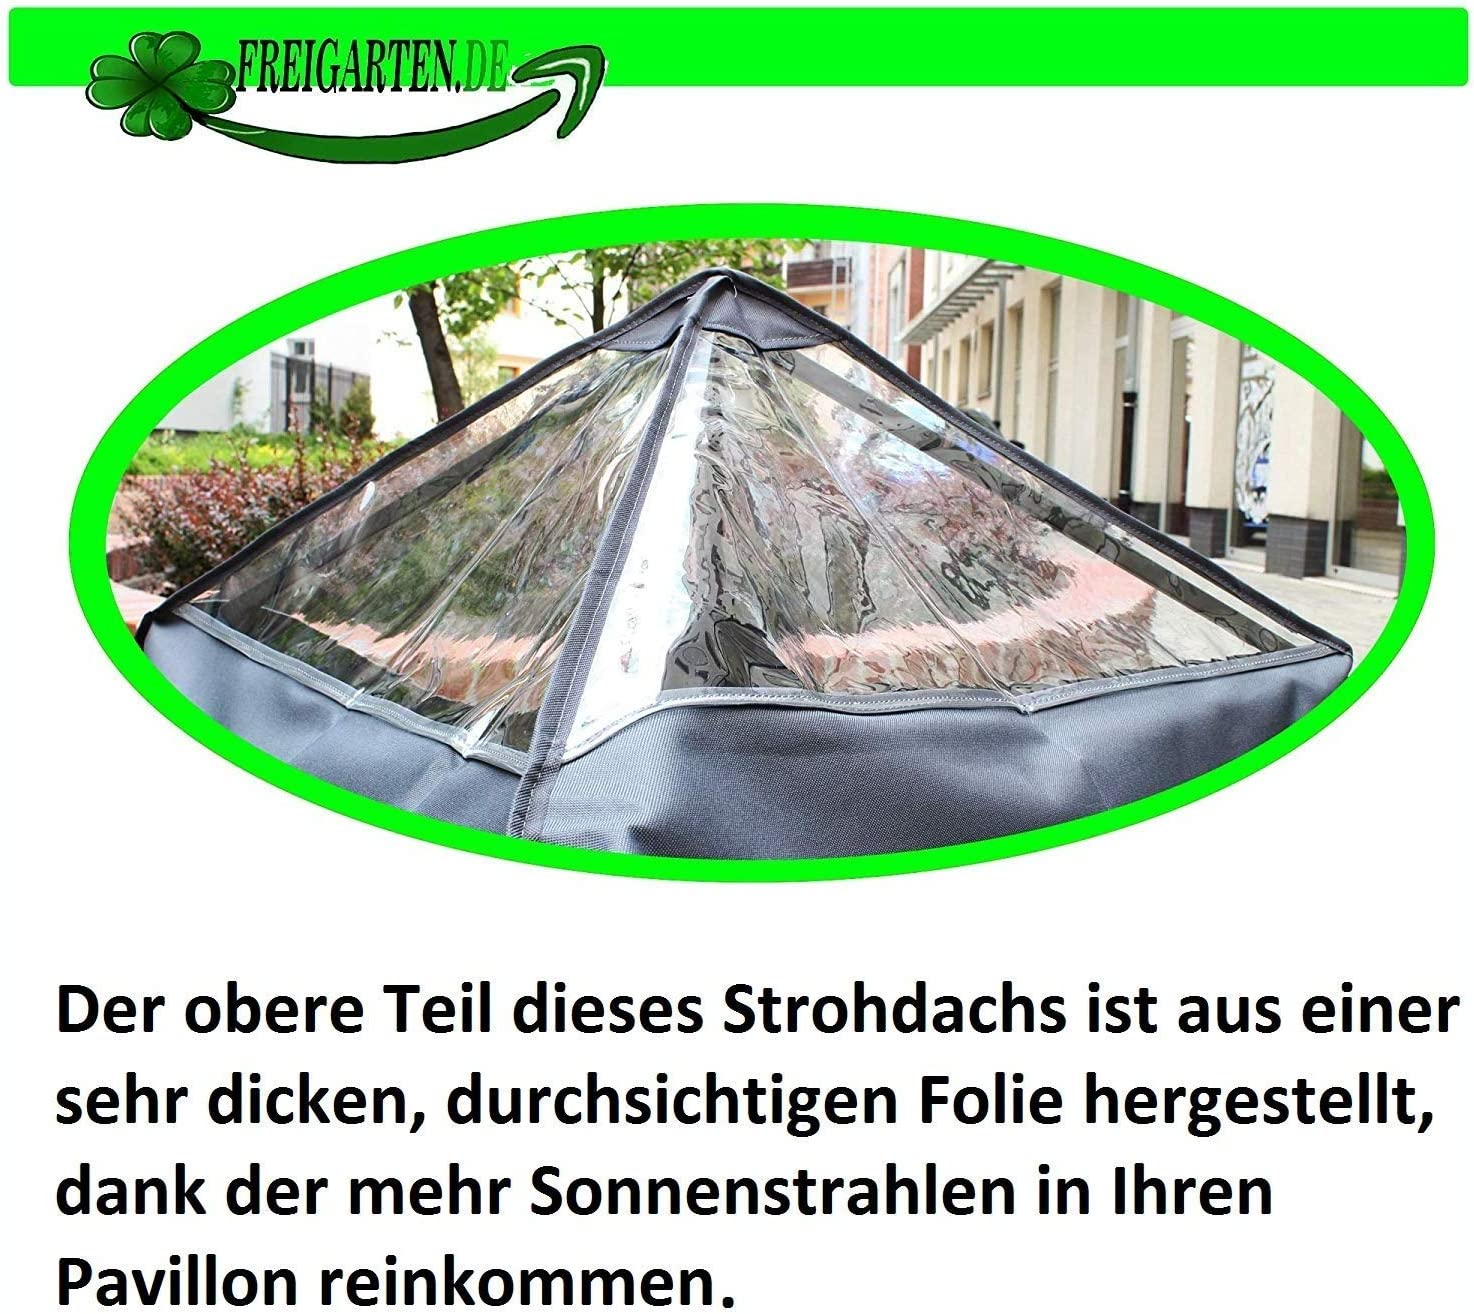 . 3 x 3 metres black extra strong model 2 material: Panama PCV soft waterproof freigarten.de Replacement roof for gazebo 370 g//m/²